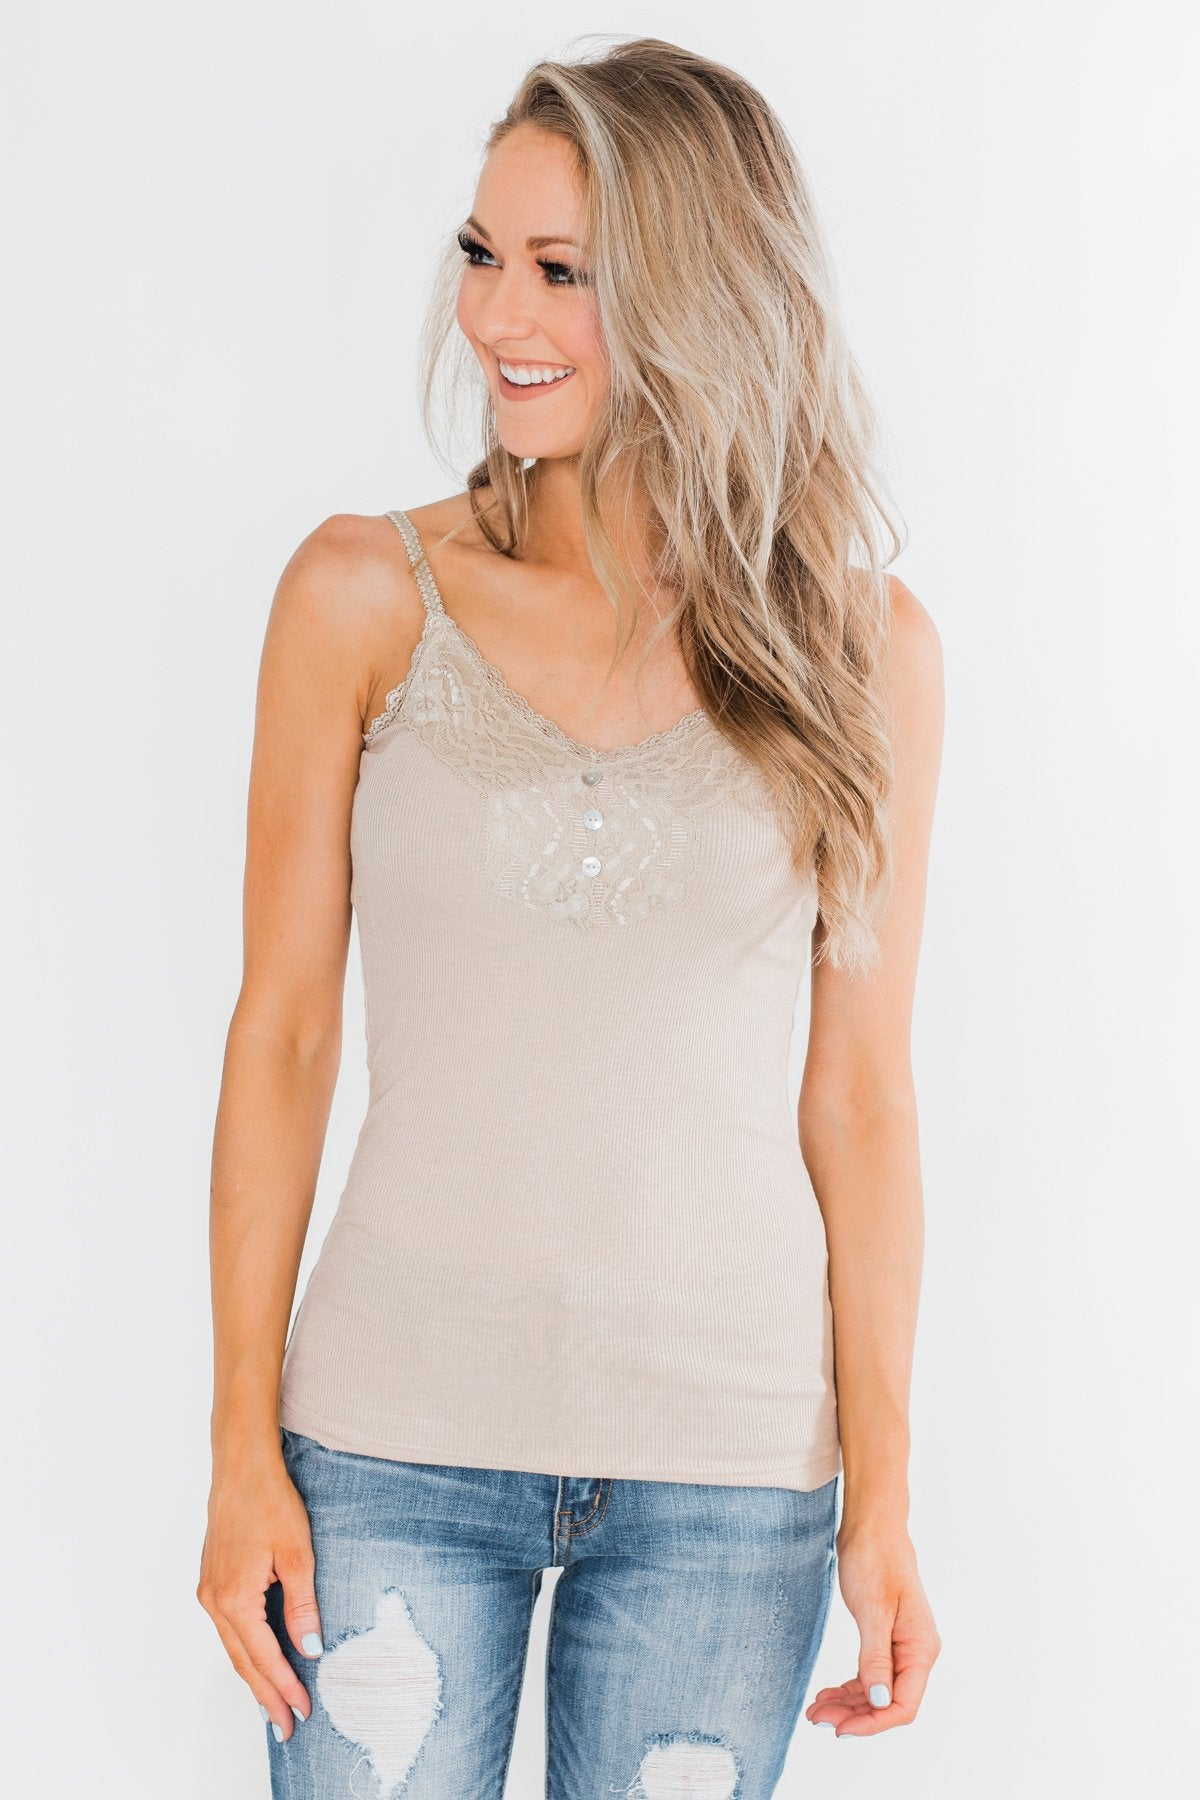 Pulse Basics Lace Trim Button Tank- Neutral